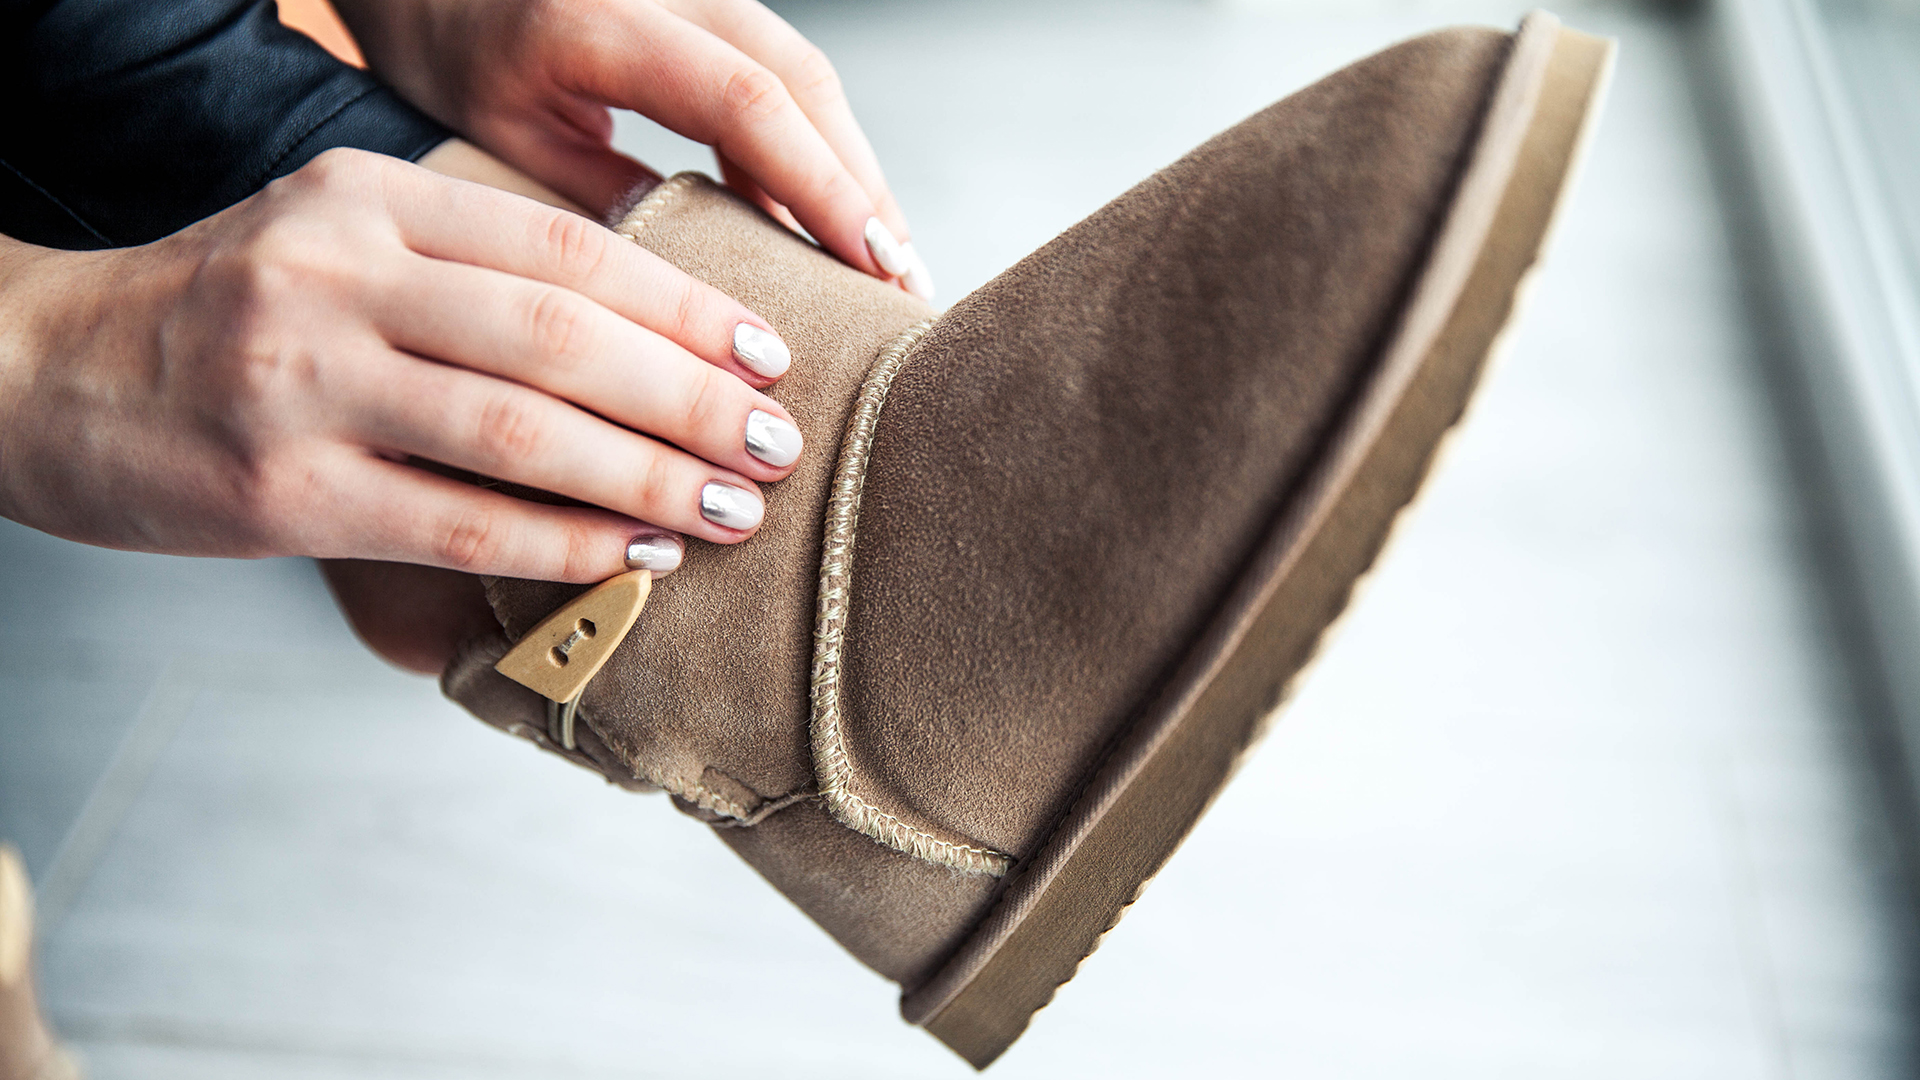 aace52cb971 Qantas bans woman from an airport lounge for wearing Uggs